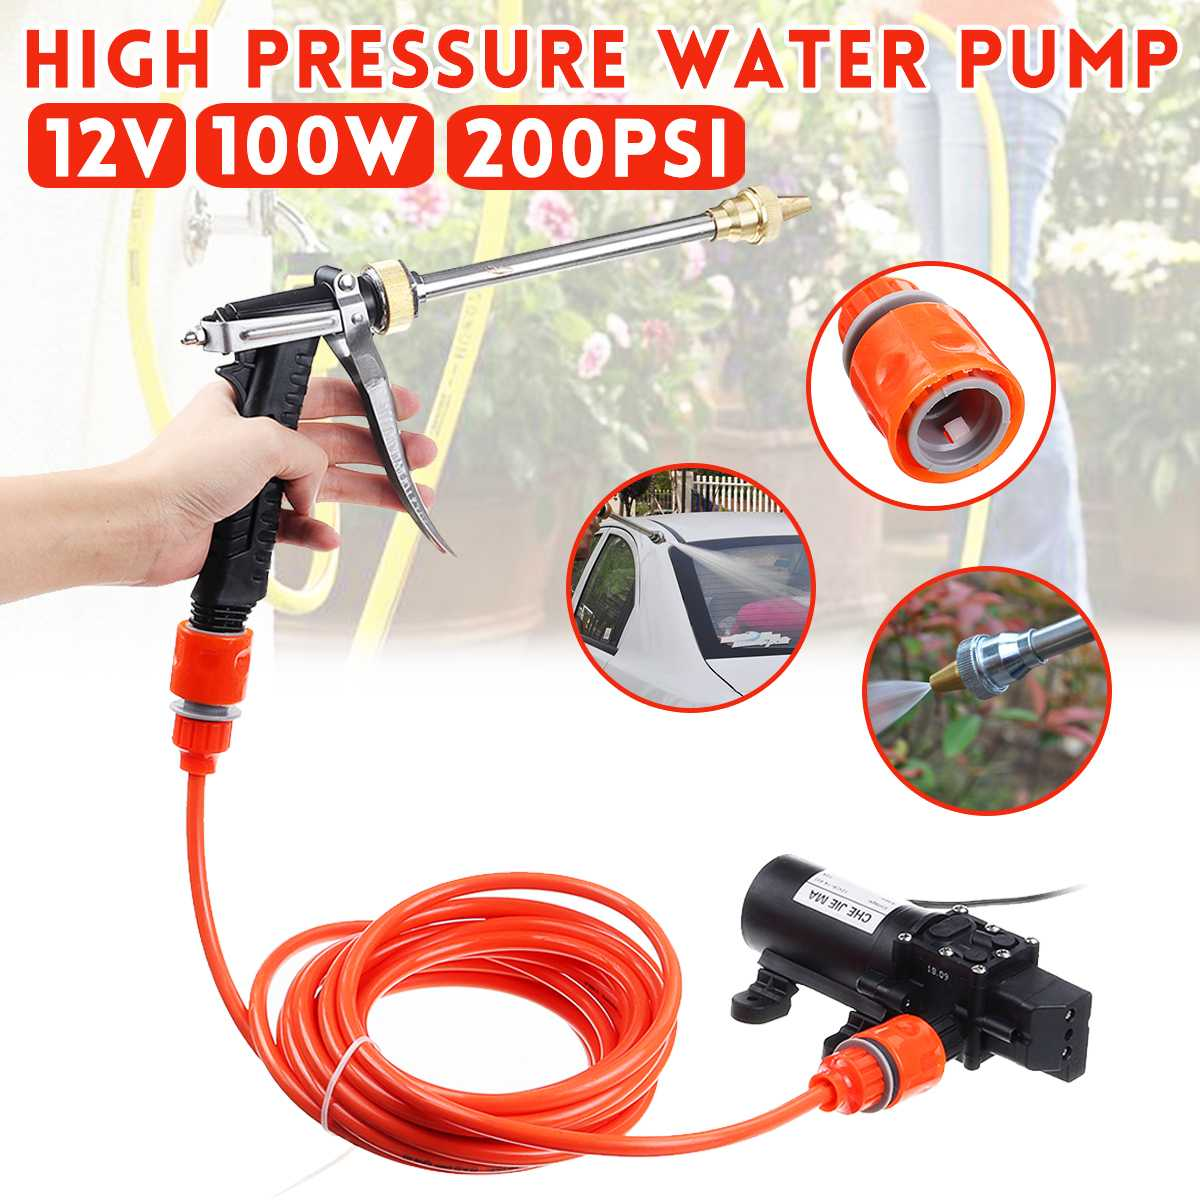 Household Car Wash Pump 100w Portable High Pressure Electric Car Wash Washer 200PSI 12V Car Washer Washing Machine